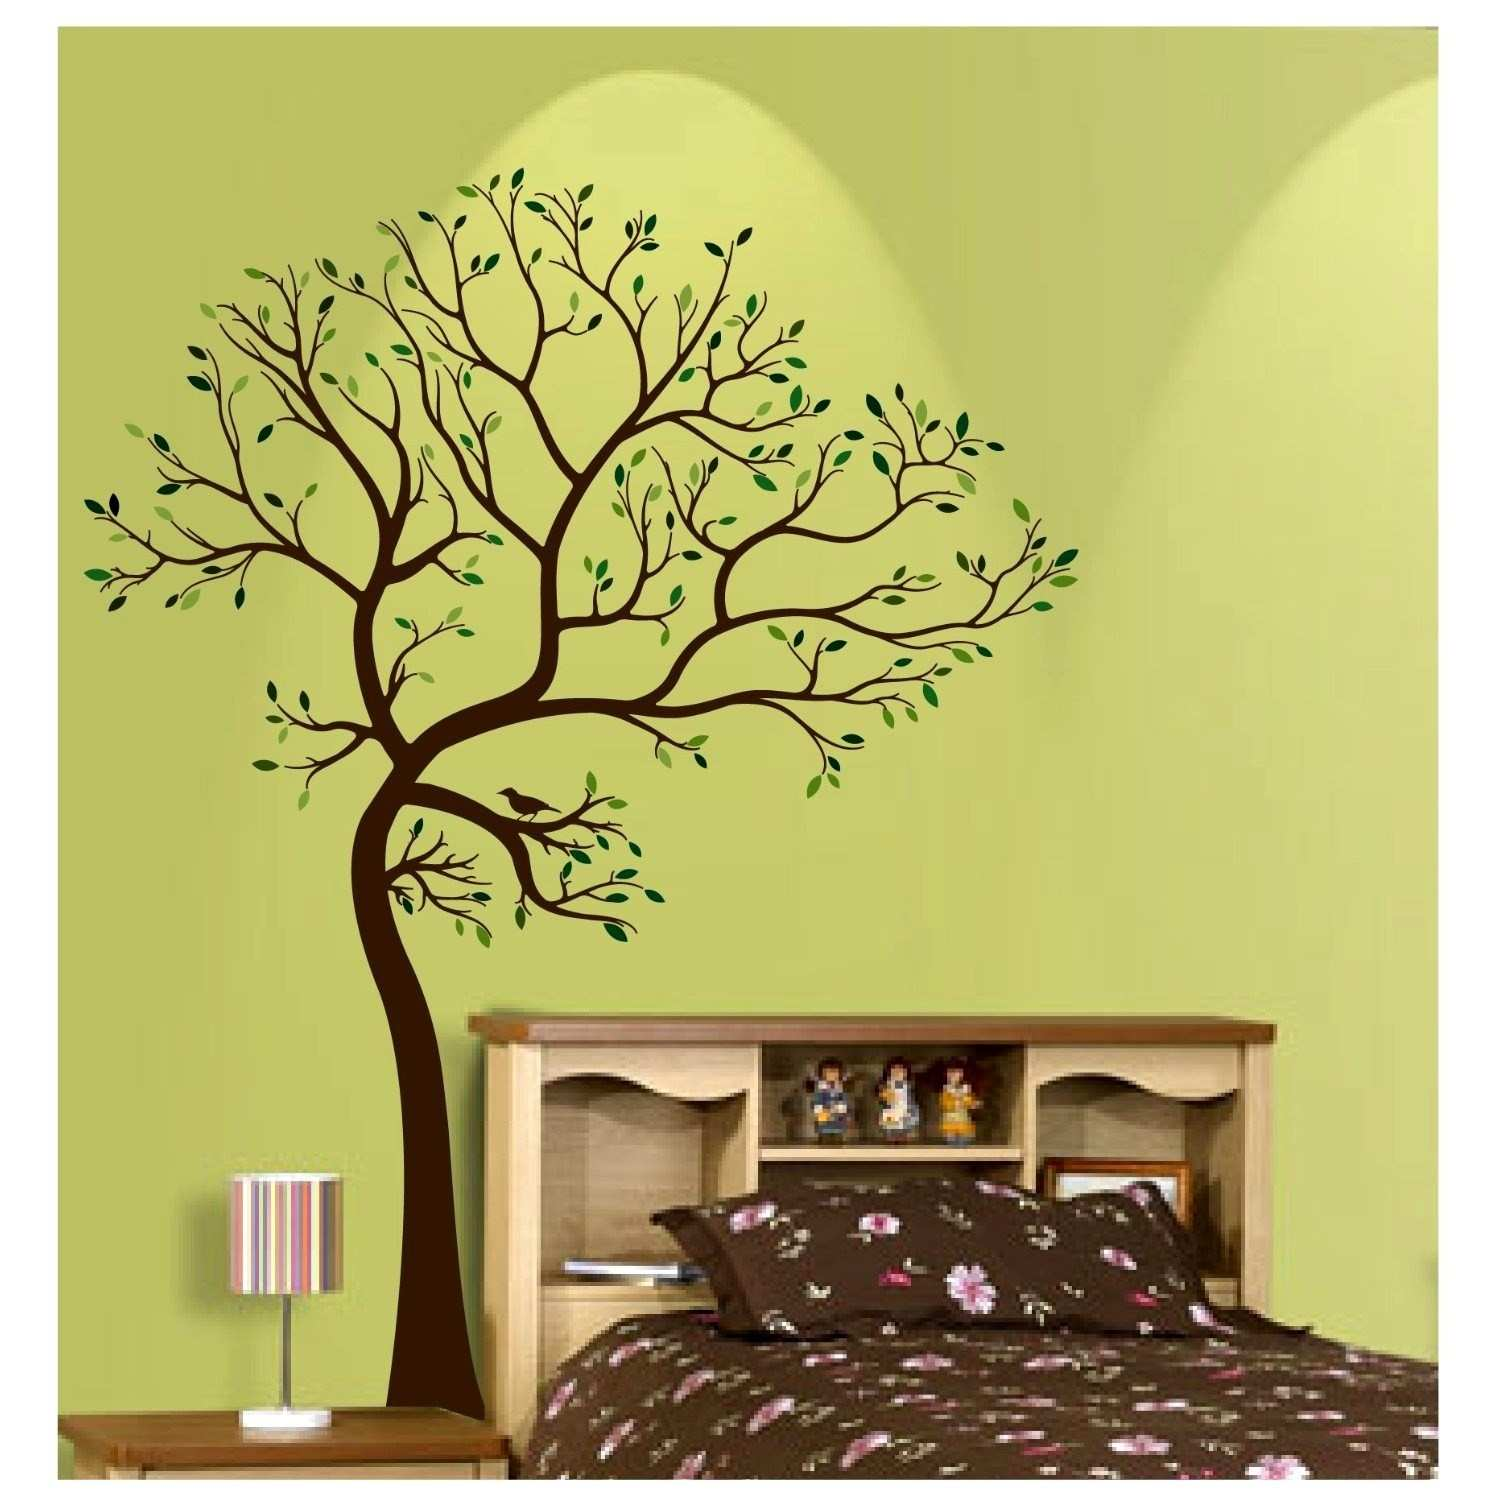 Exelent Tree Wall Decor Ideas Ideas Art & Wall Decor hecatalogfo